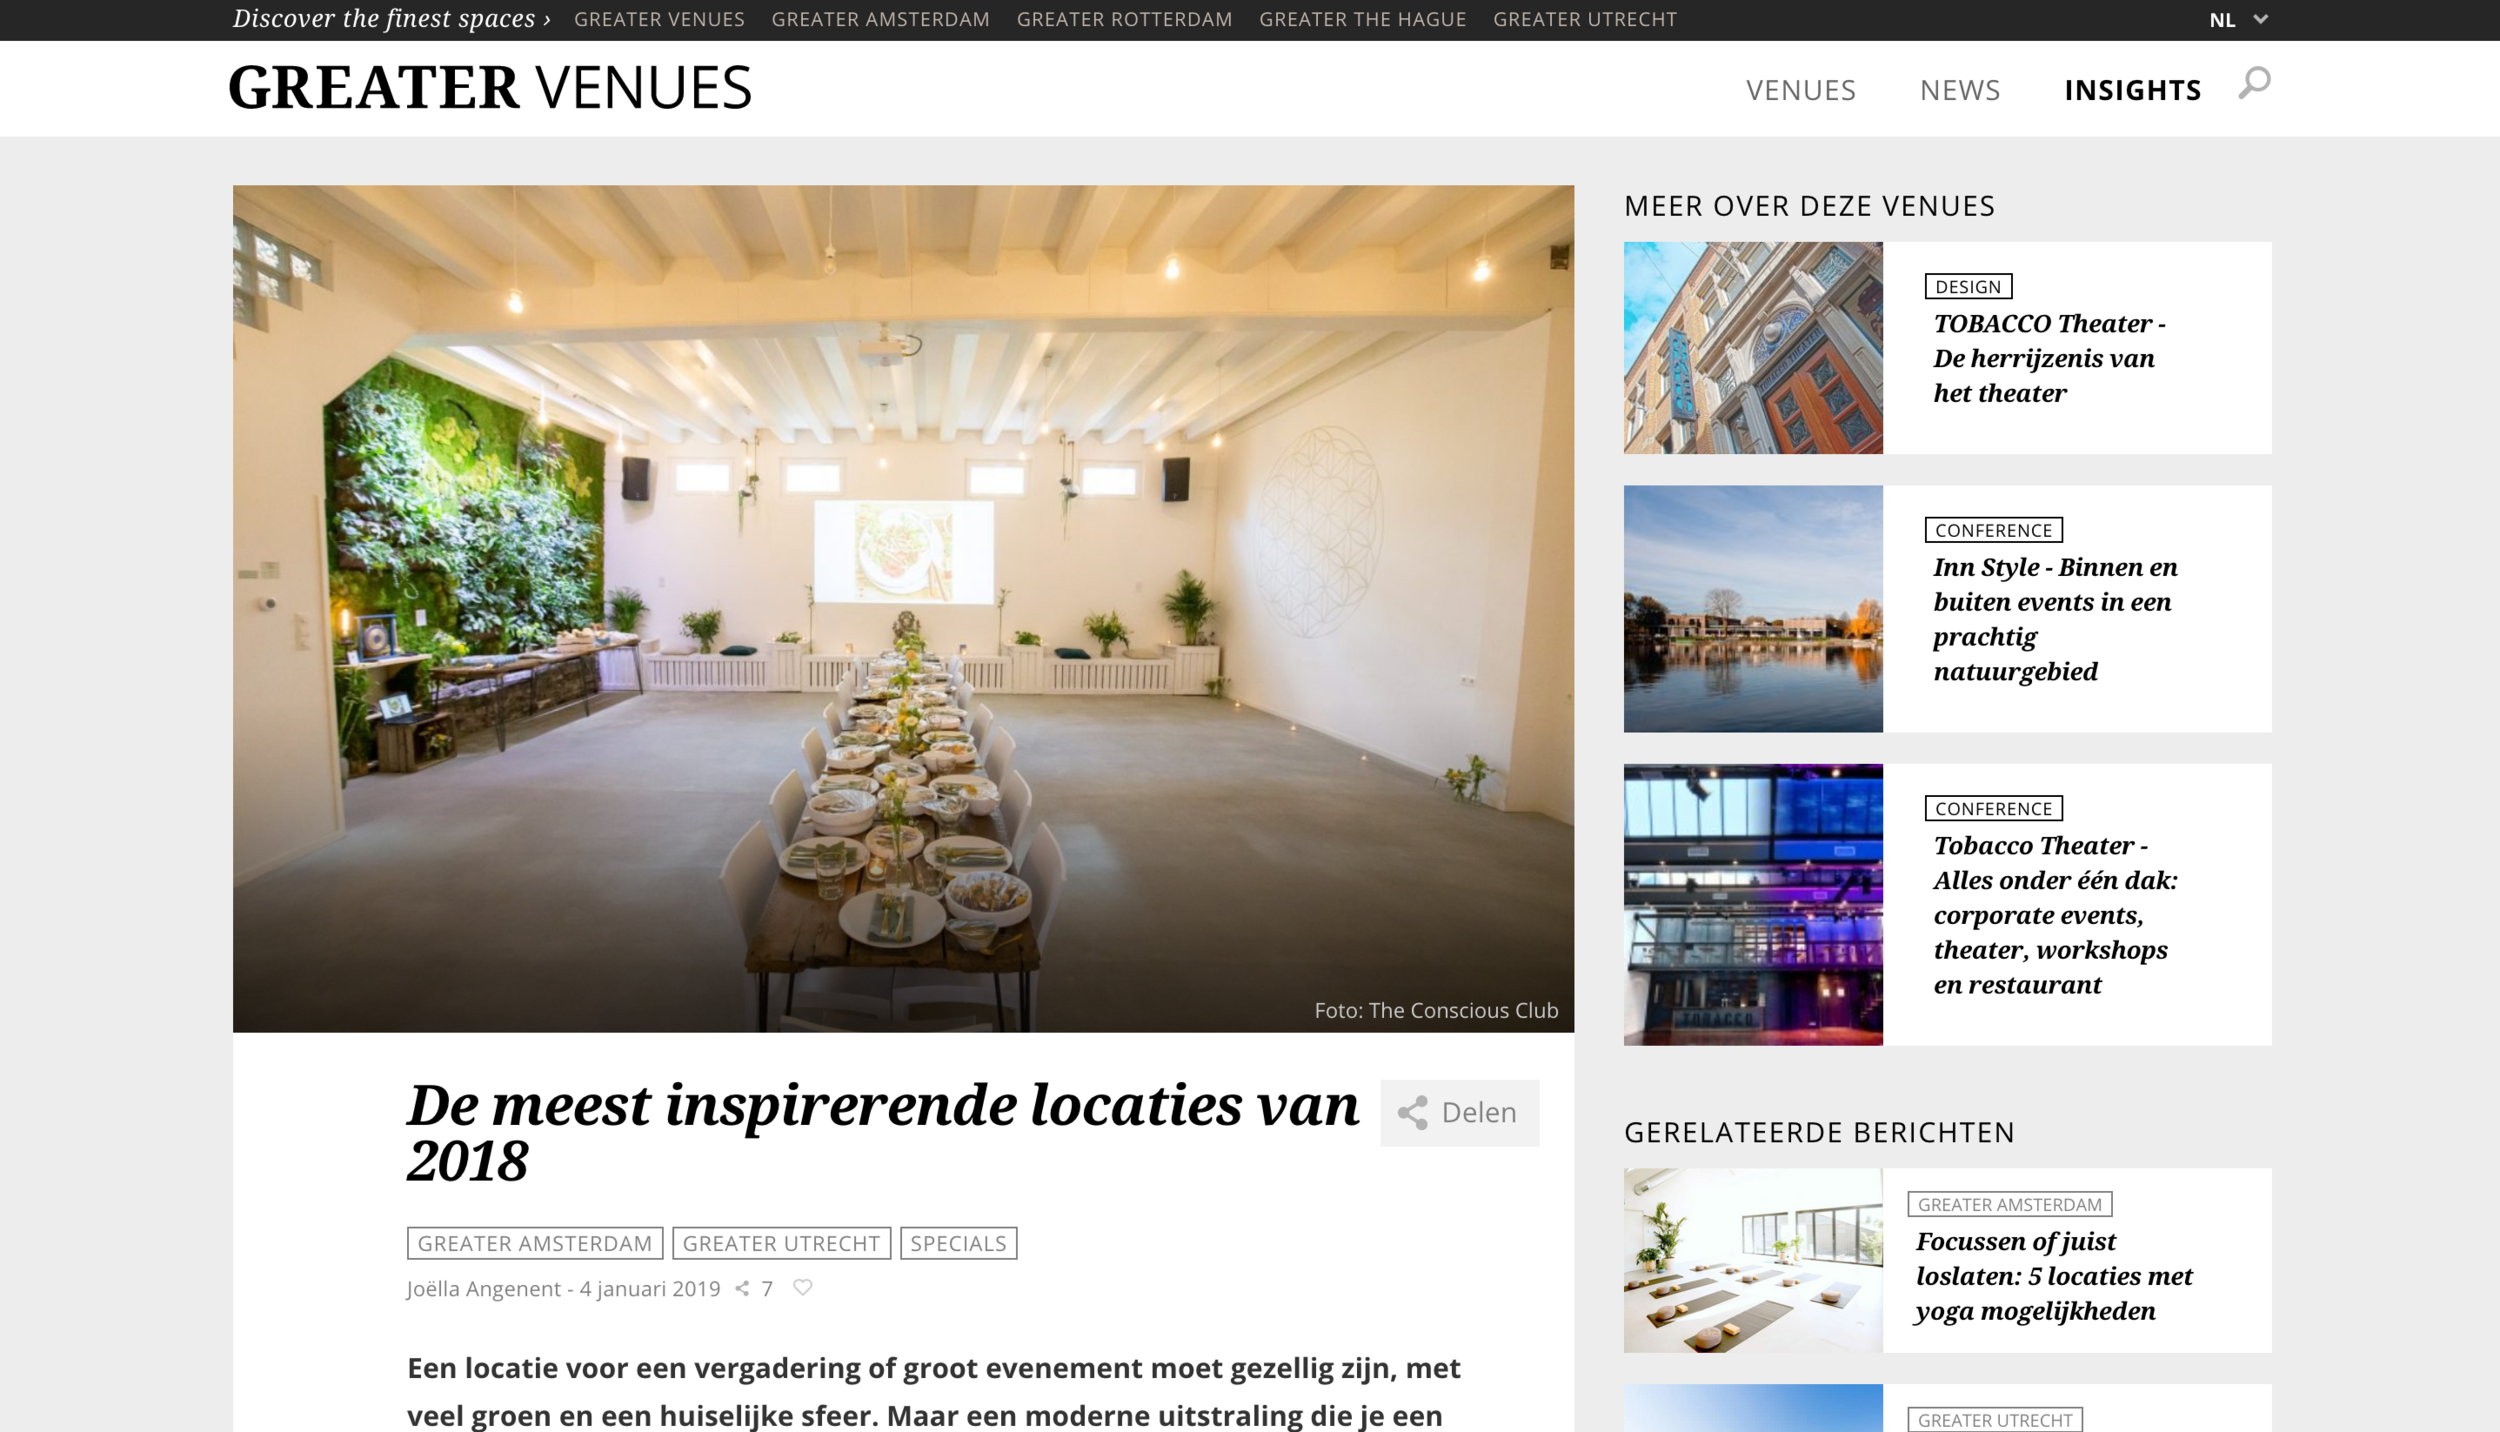 https://www.greatervenues.com/insight/de-meest-inspirerende-locaties-van-2018/